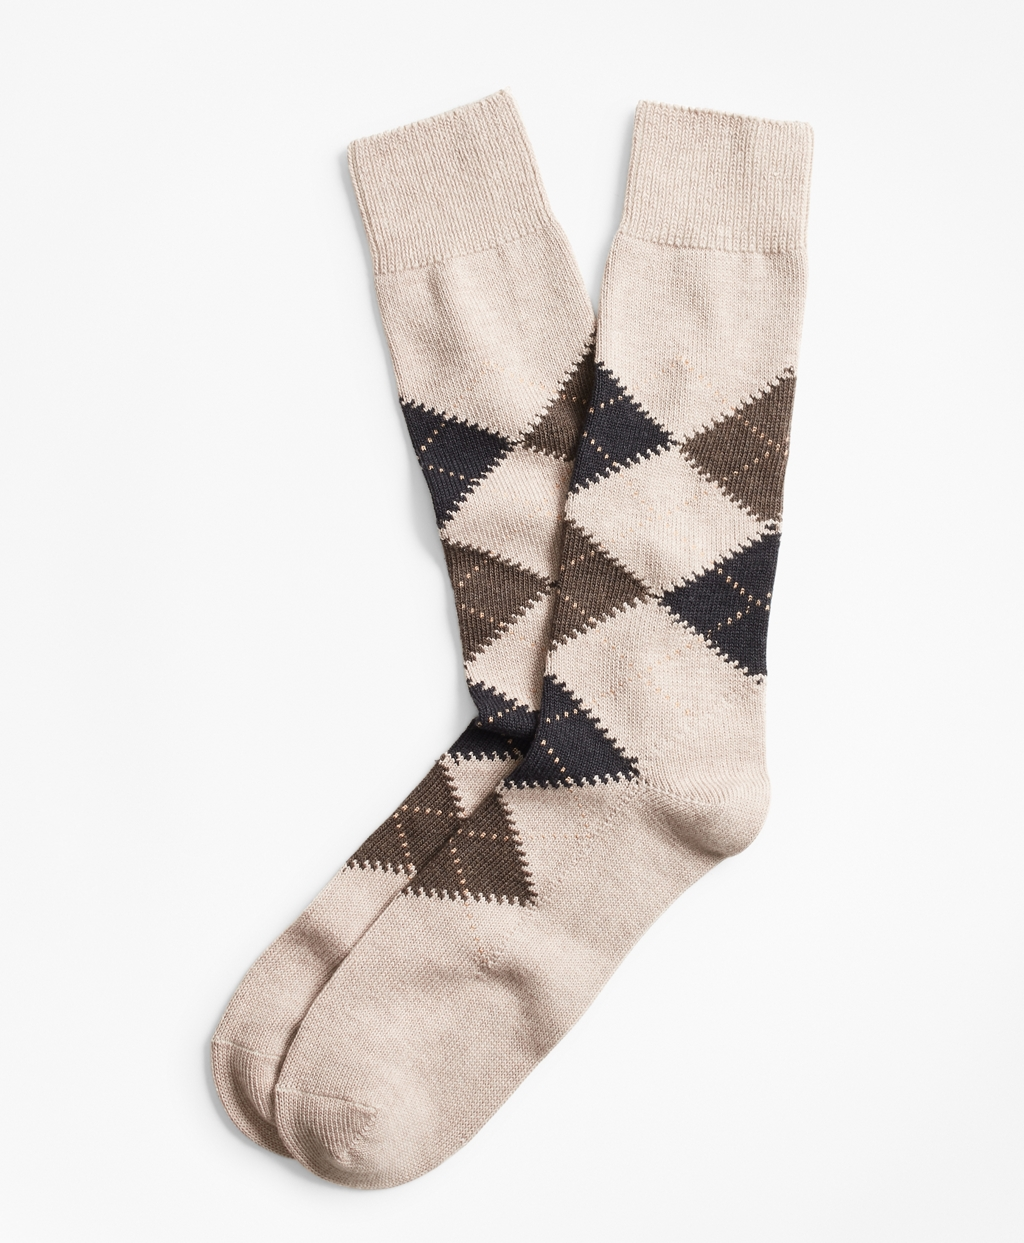 Vintage Men's Socks History-1900 to 1960s Brooks Brothers Mens Argyle Crew Socks $24.50 AT vintagedancer.com